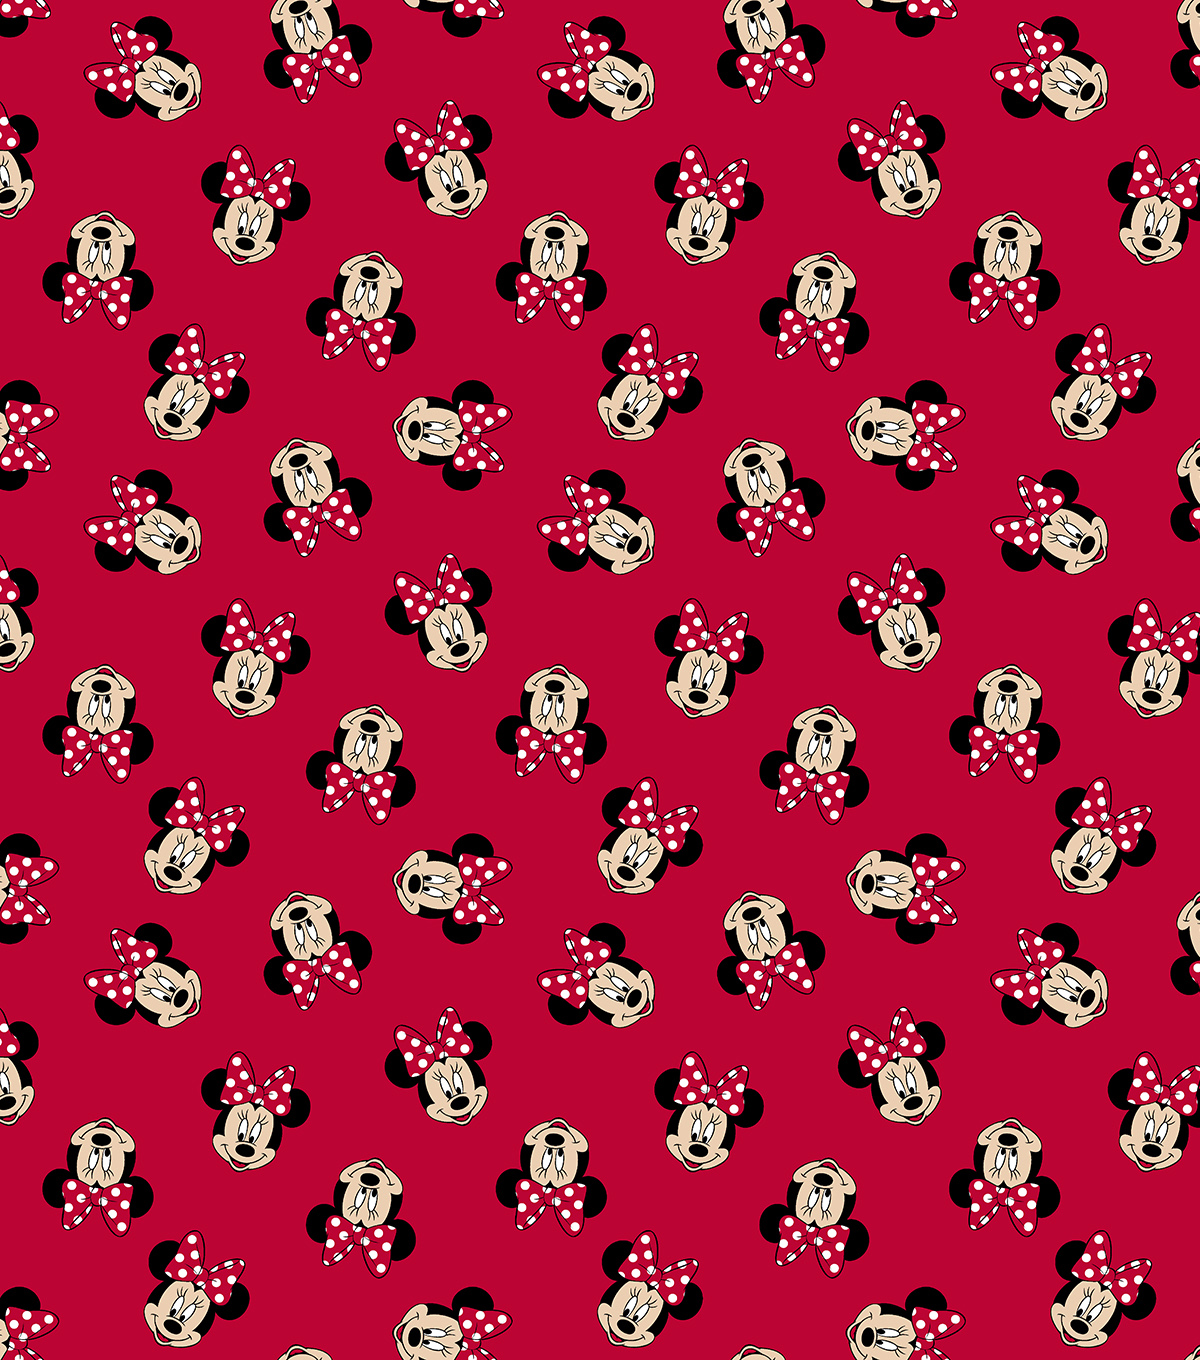 Disney Minnie Mouse Cotton Fabric Tossed Minnie Heads Joann